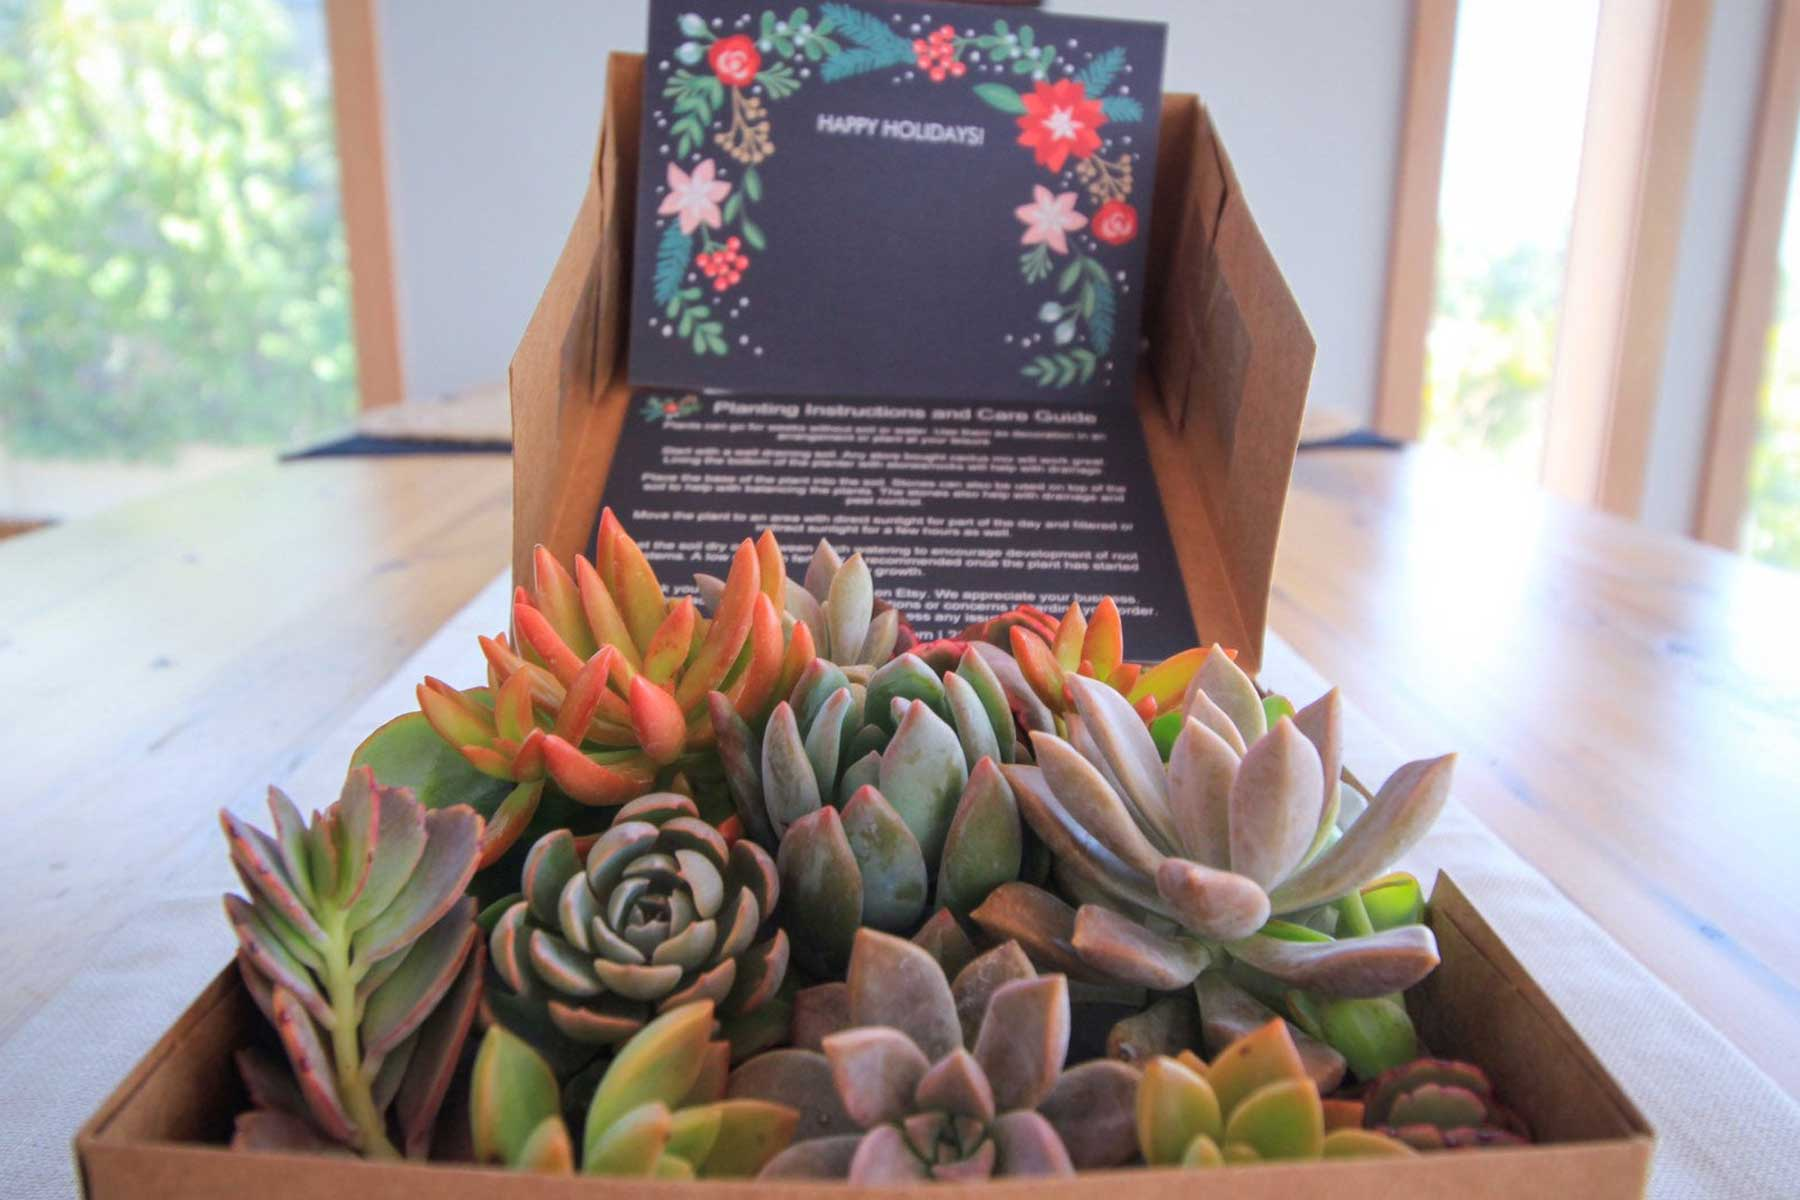 Etsy Care Package of assorted succulents